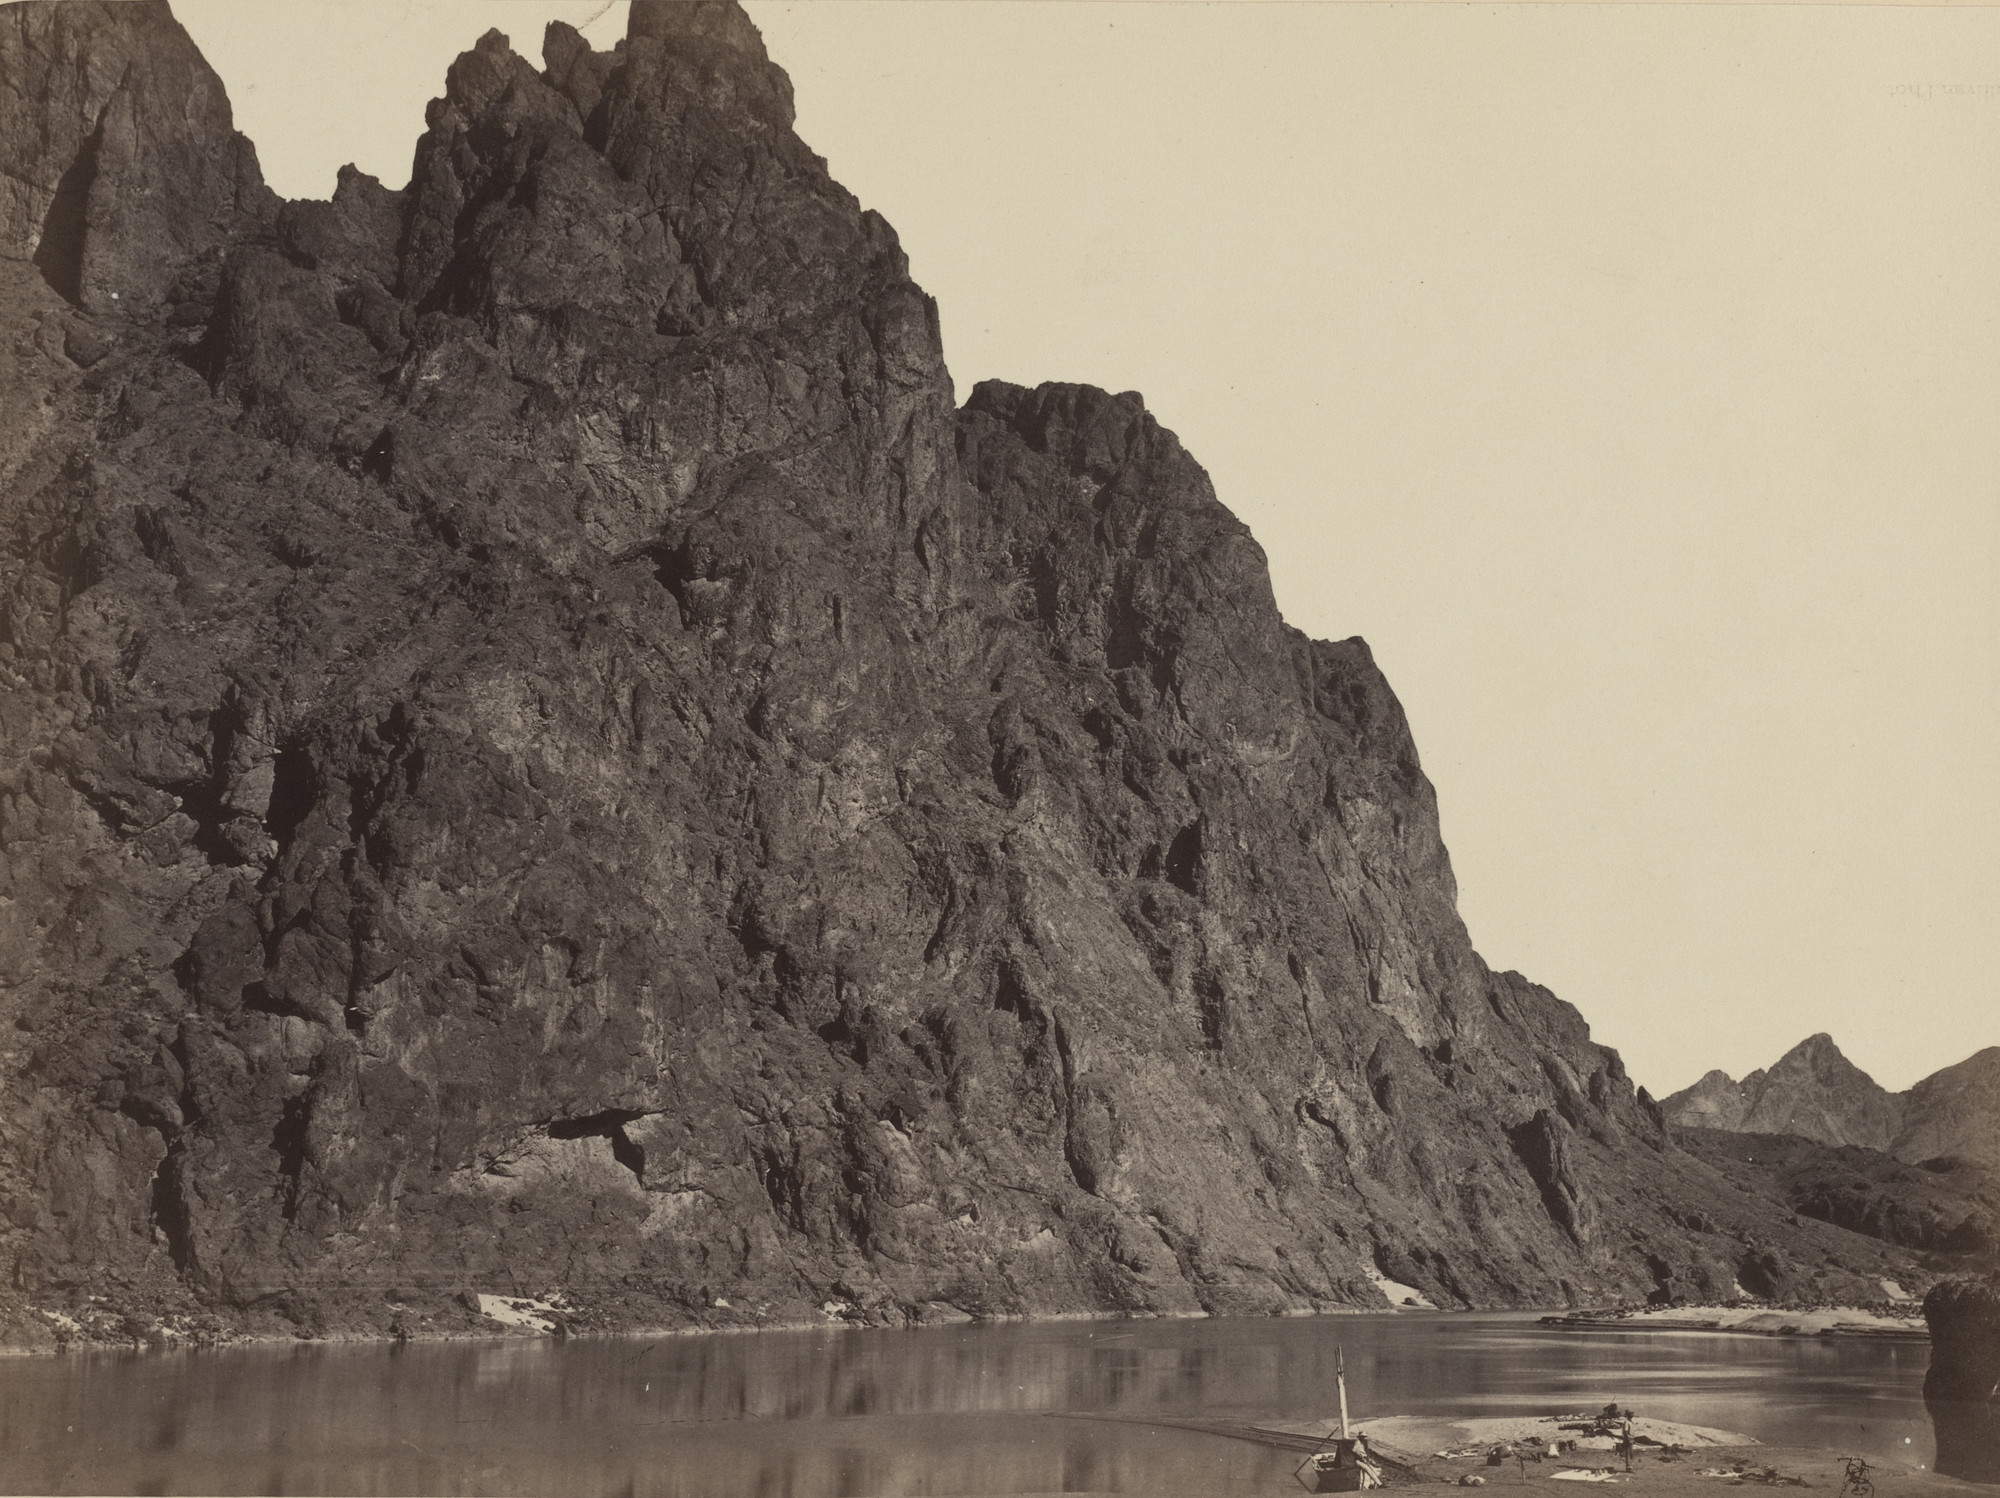 Timothy O'Sullivan. Bluff Opposite Big Horn Camp, Black Canyon, Colorado River. Seasons of 1871, 1872 and 1873